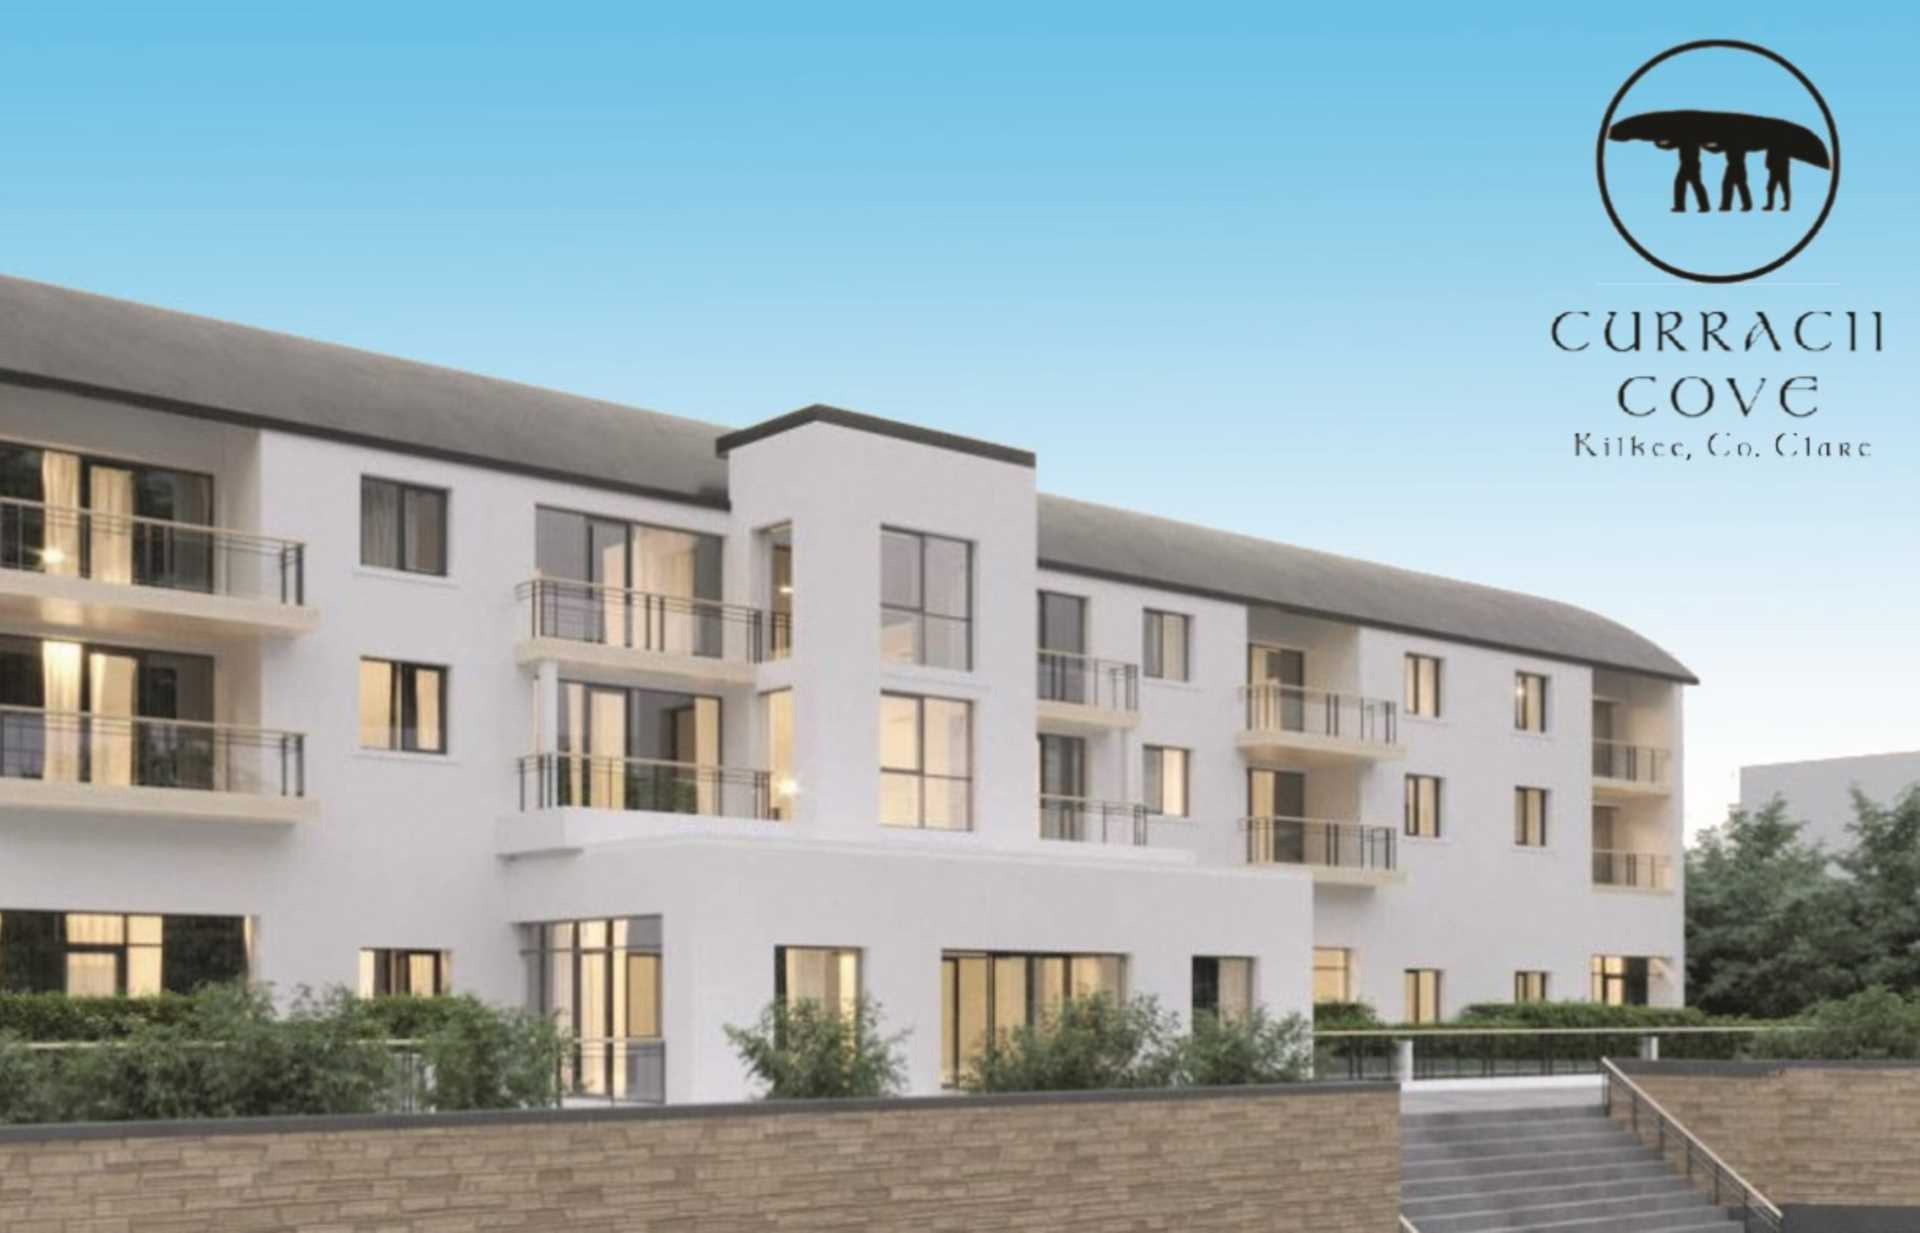 Apartments, Currach Cove, Kilkee, Co. Clare